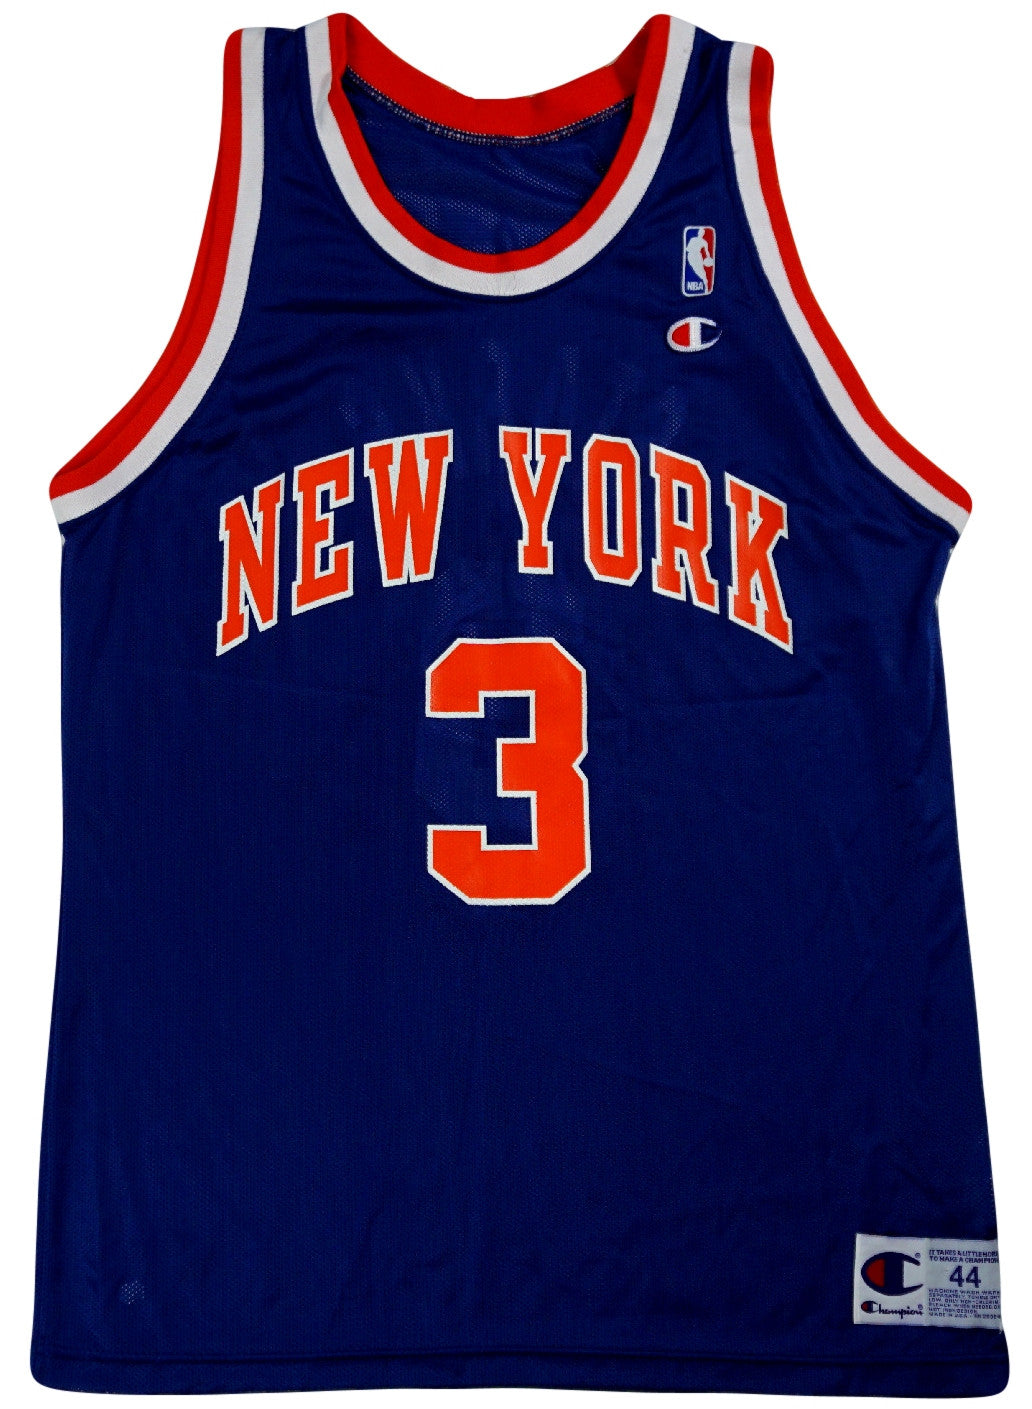 John Starks Knicks Jersey - And Still